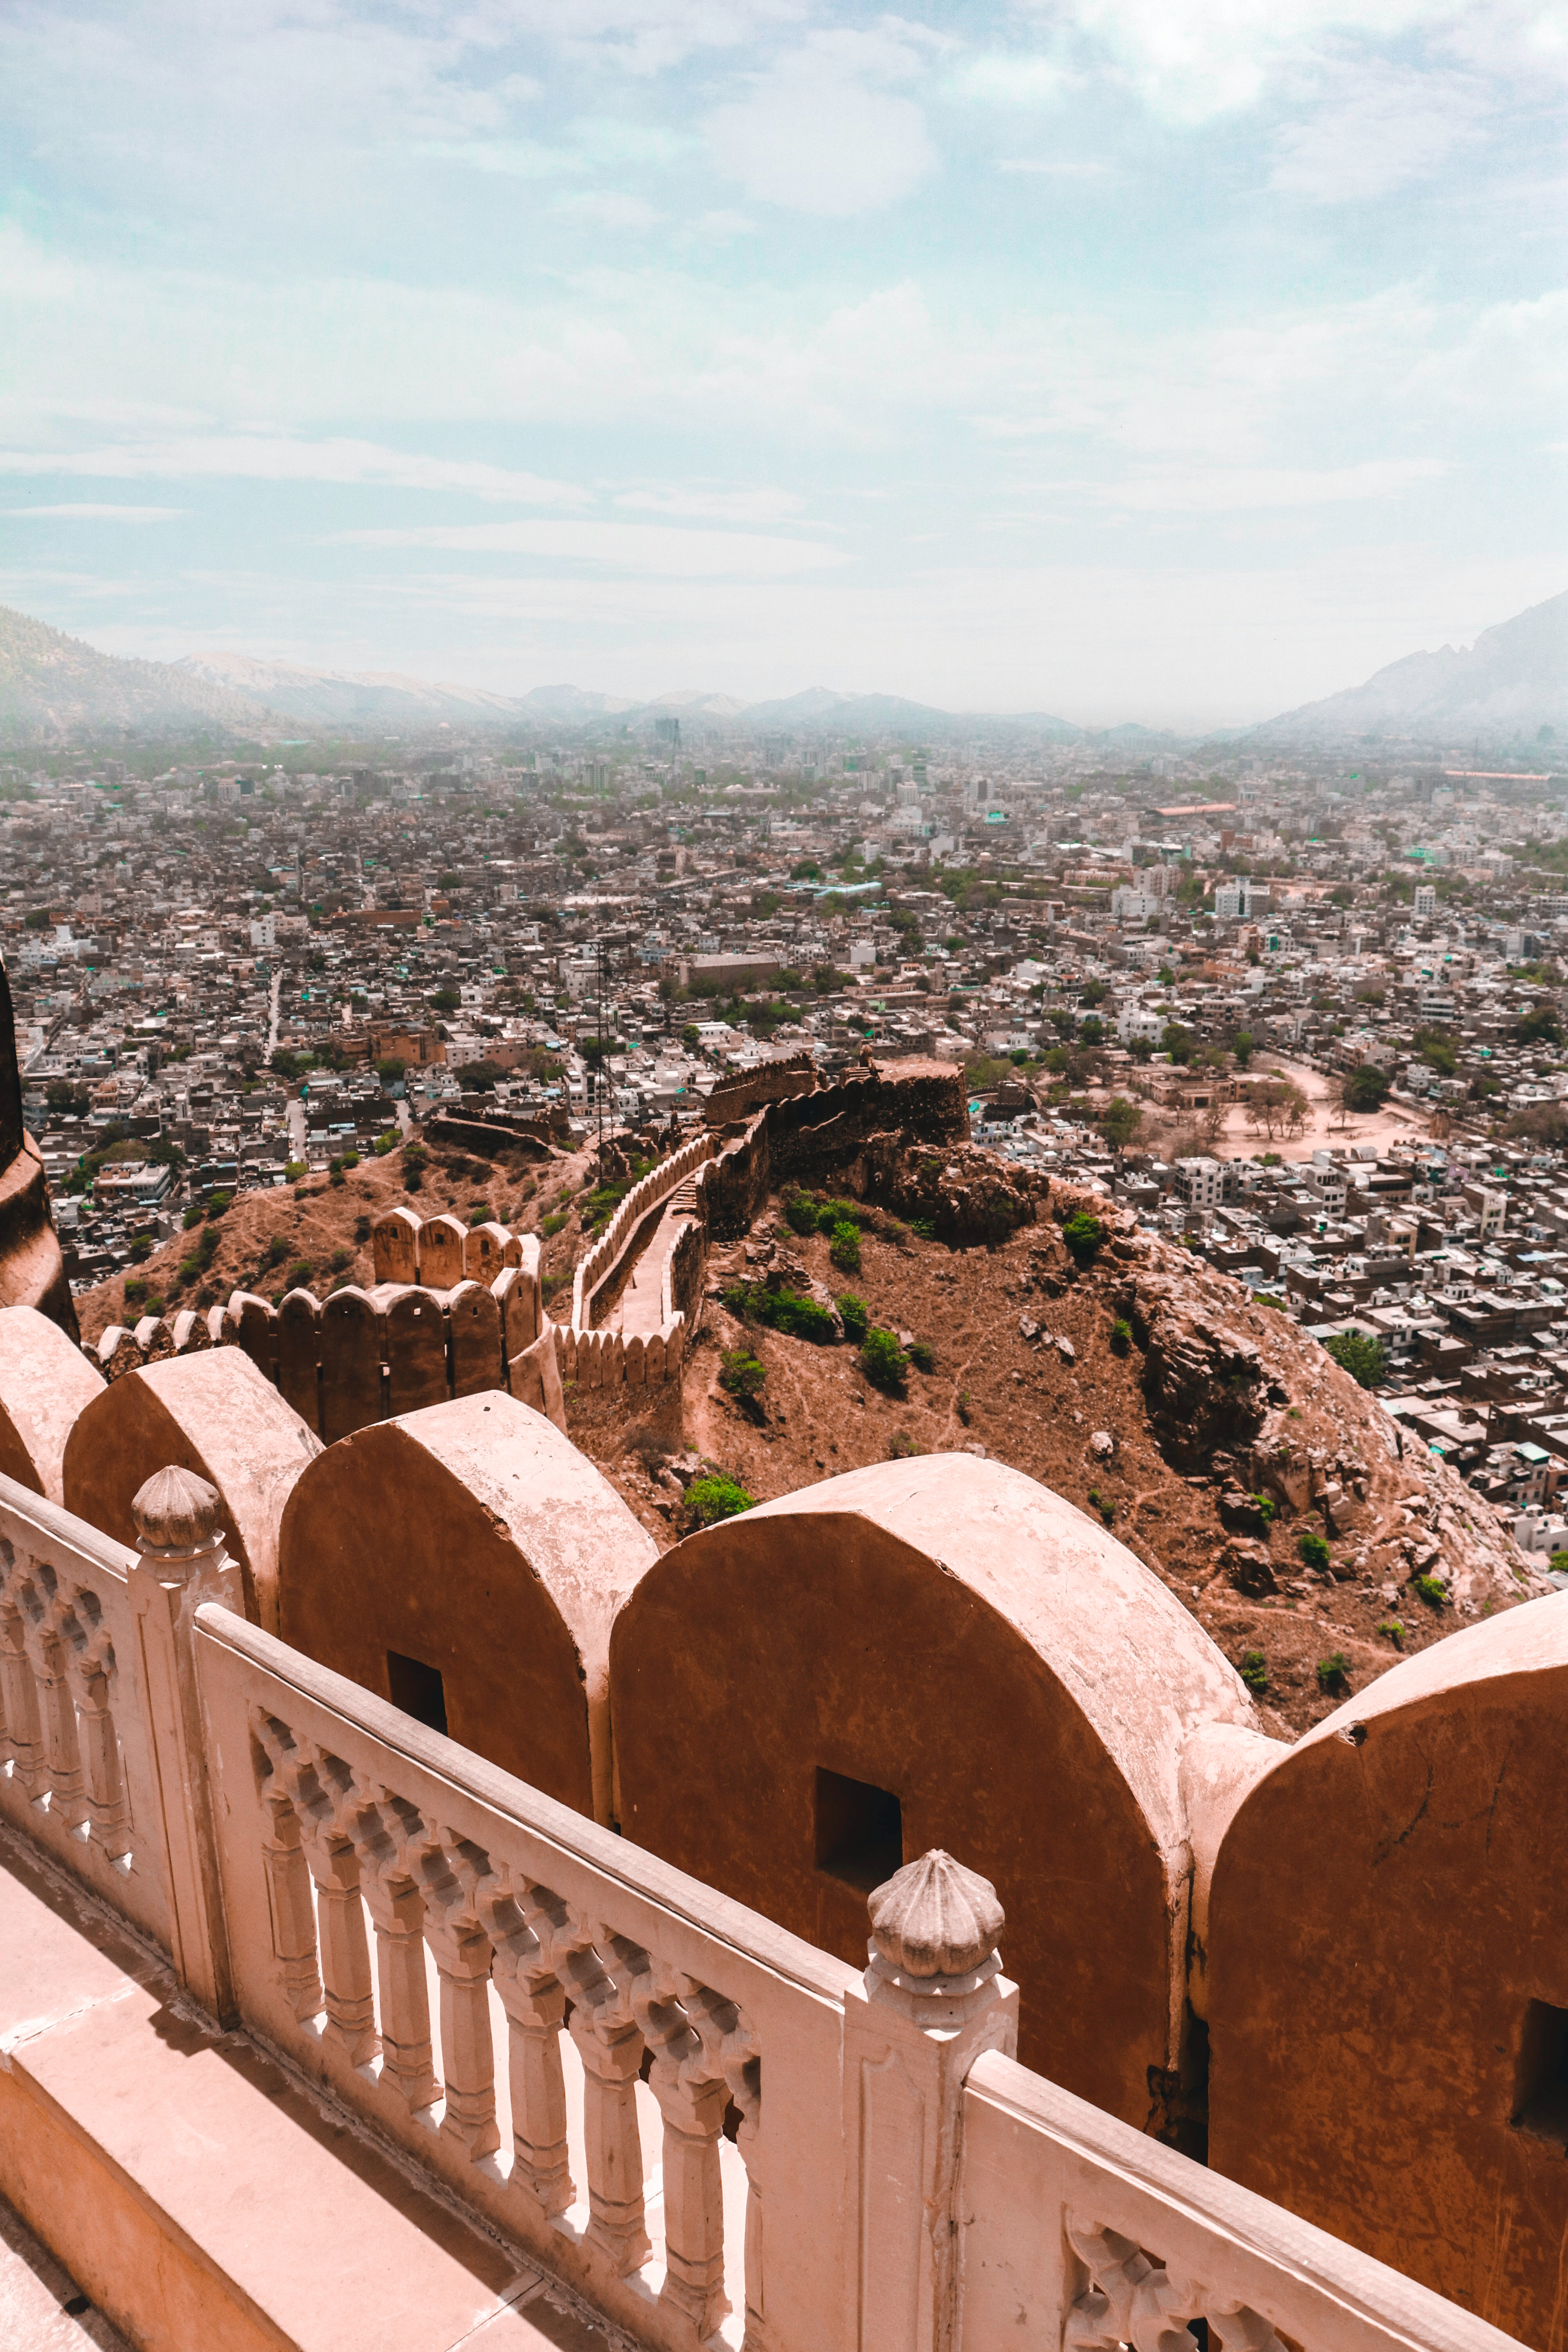 jaipur nahargarh fort rajasthan places tourist india bellezze vedere cosa daytime scenic during photographer